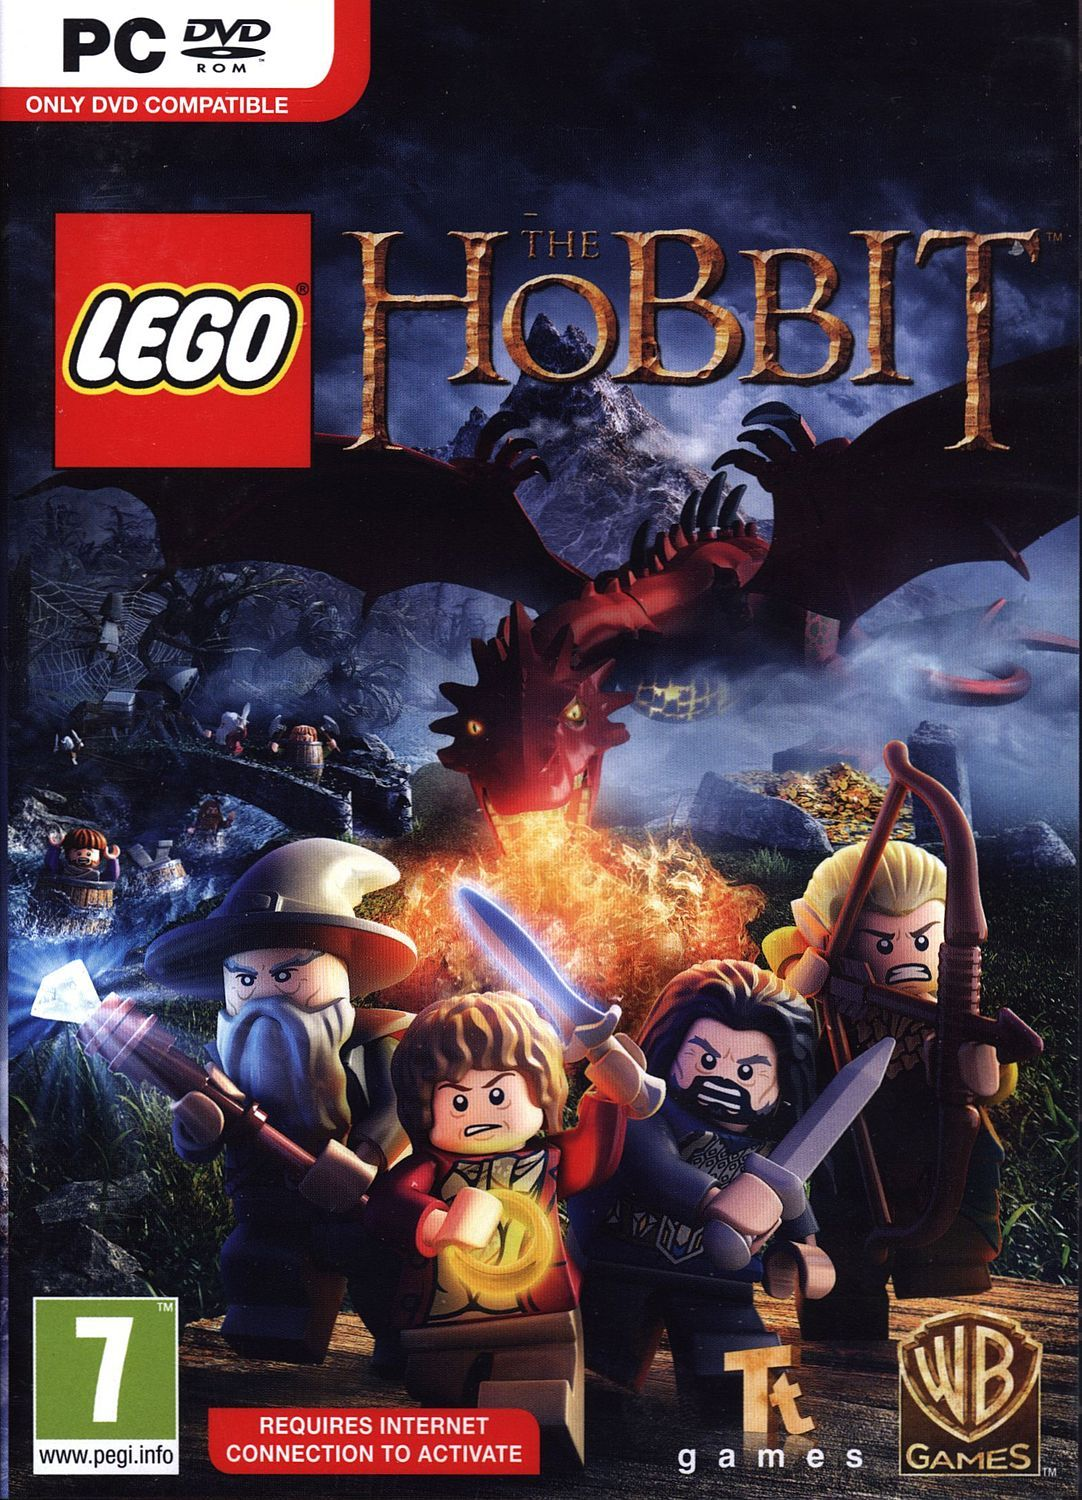 LEGO The Hobbit (PC) - 1